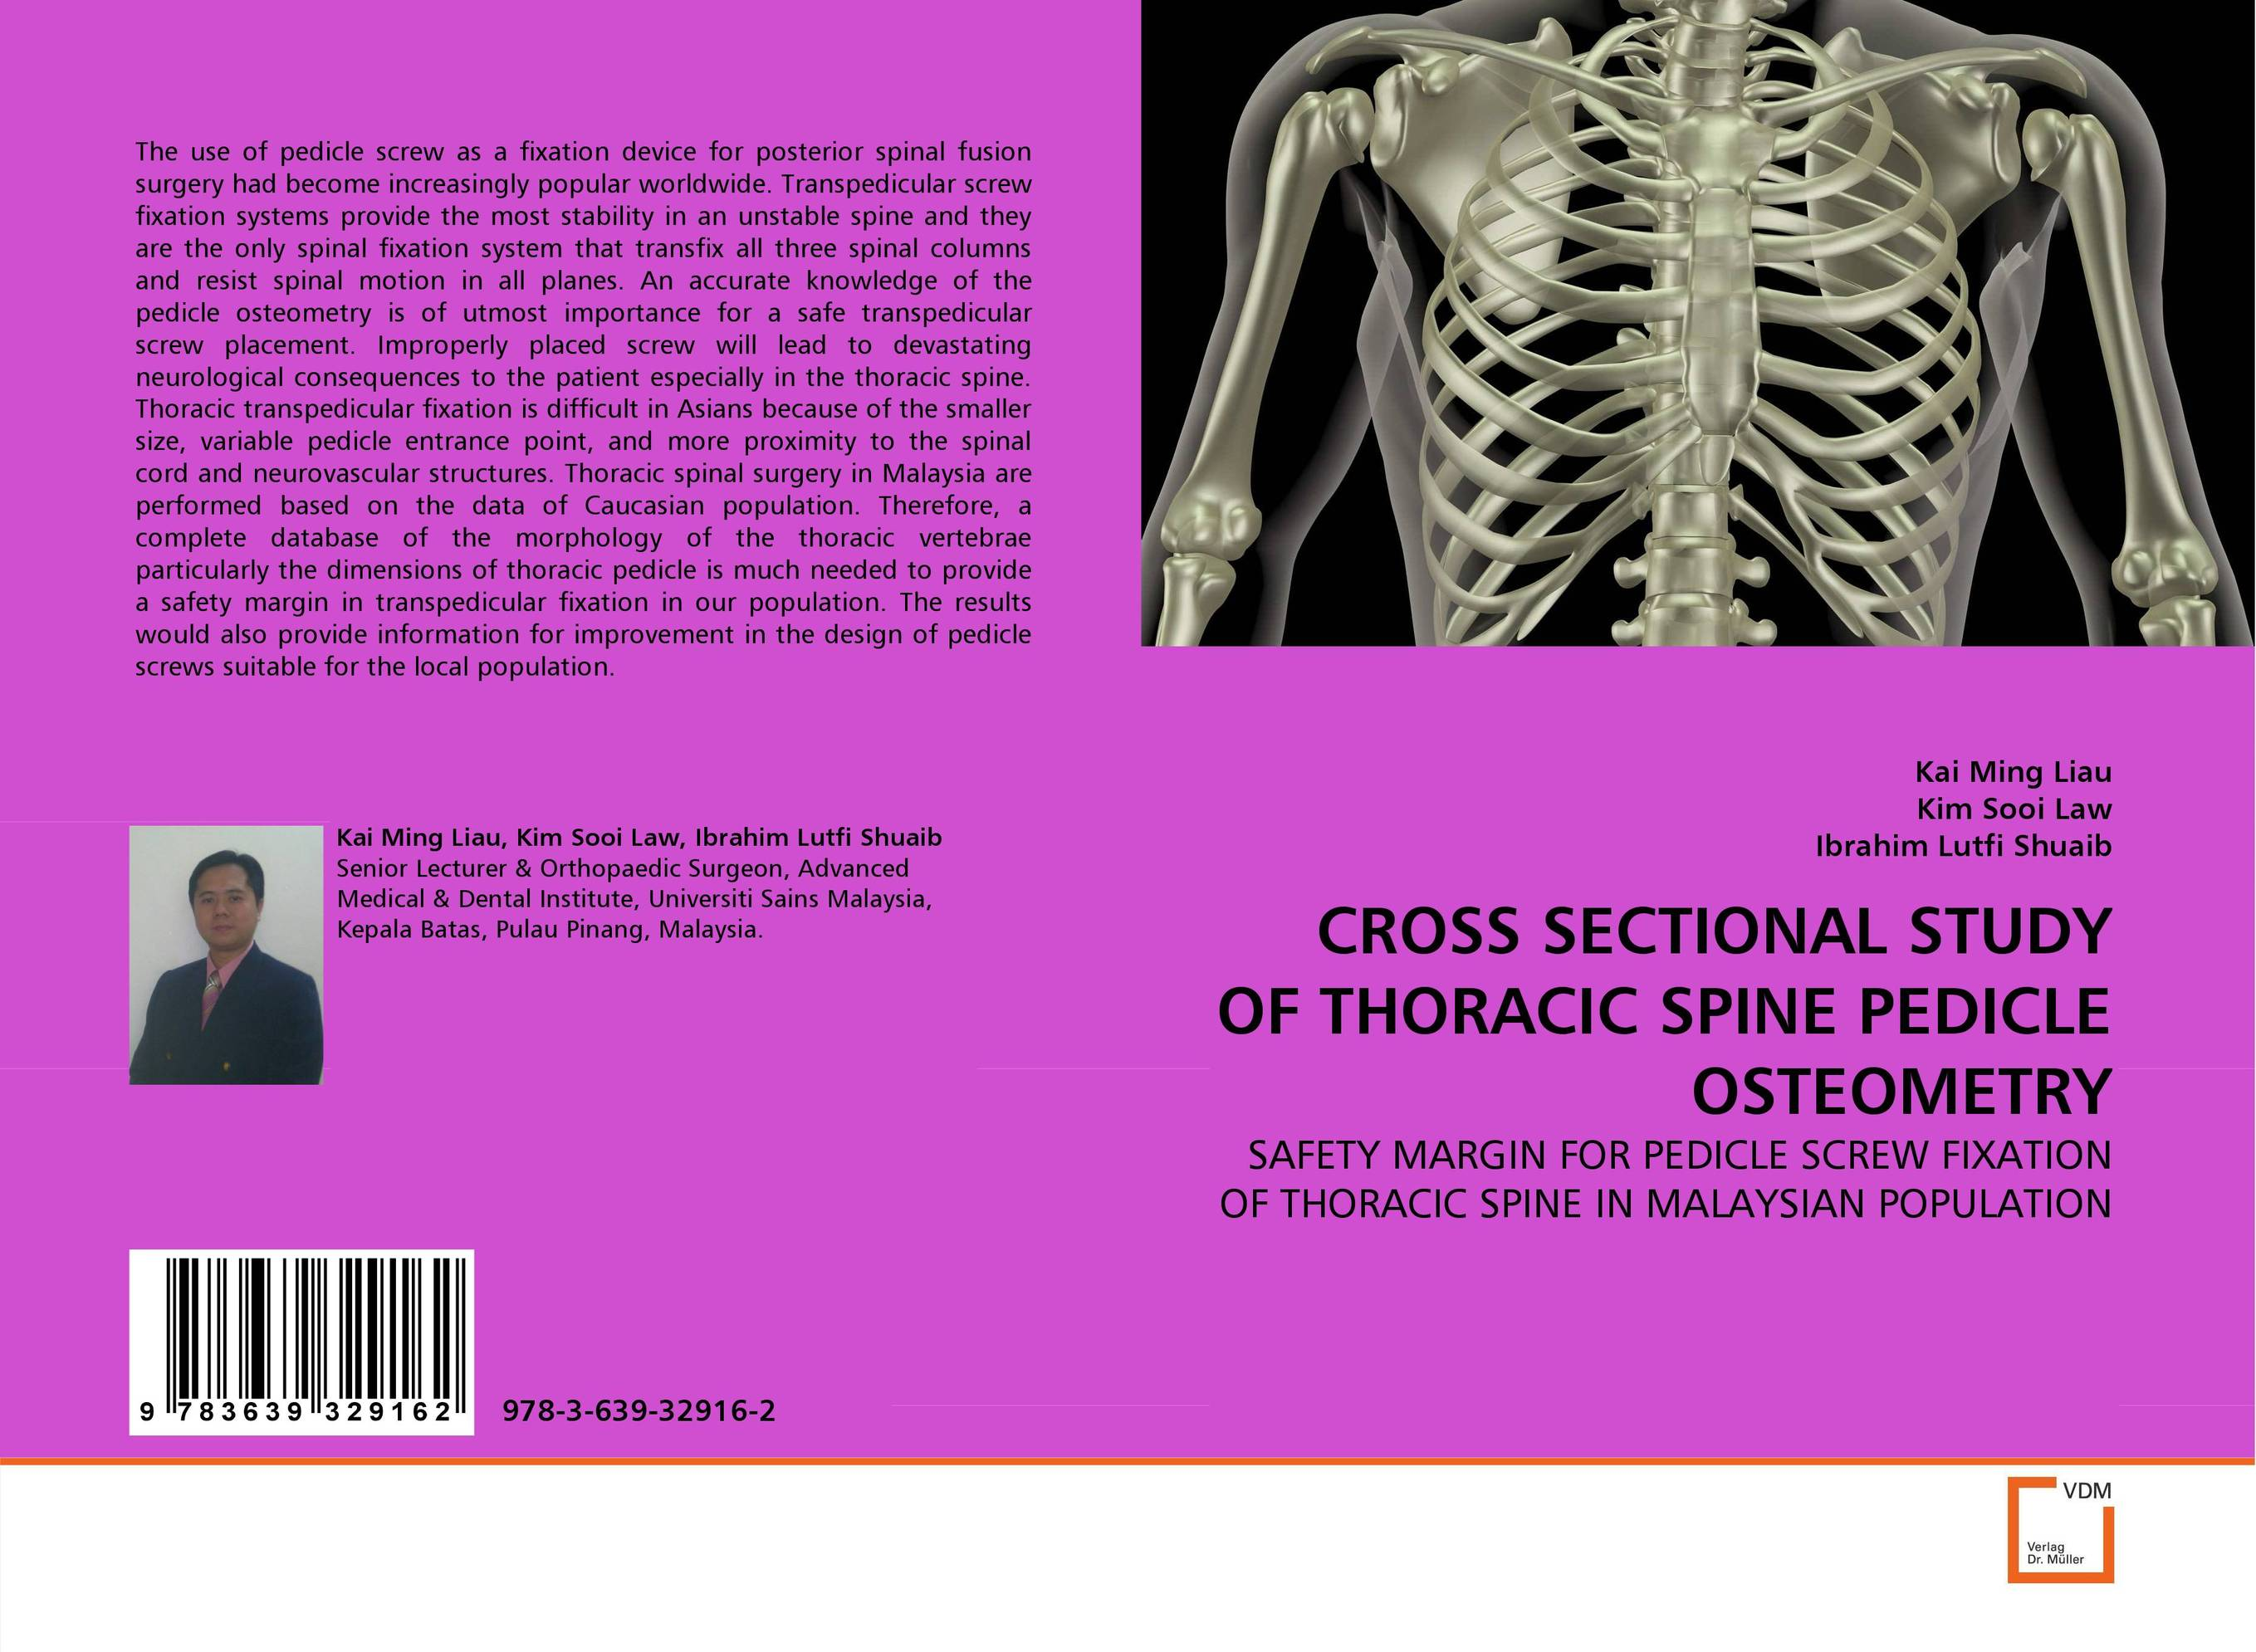 CROSS SECTIONAL STUDY OF THORACIC SPINE PEDICLE OSTEOMETRY